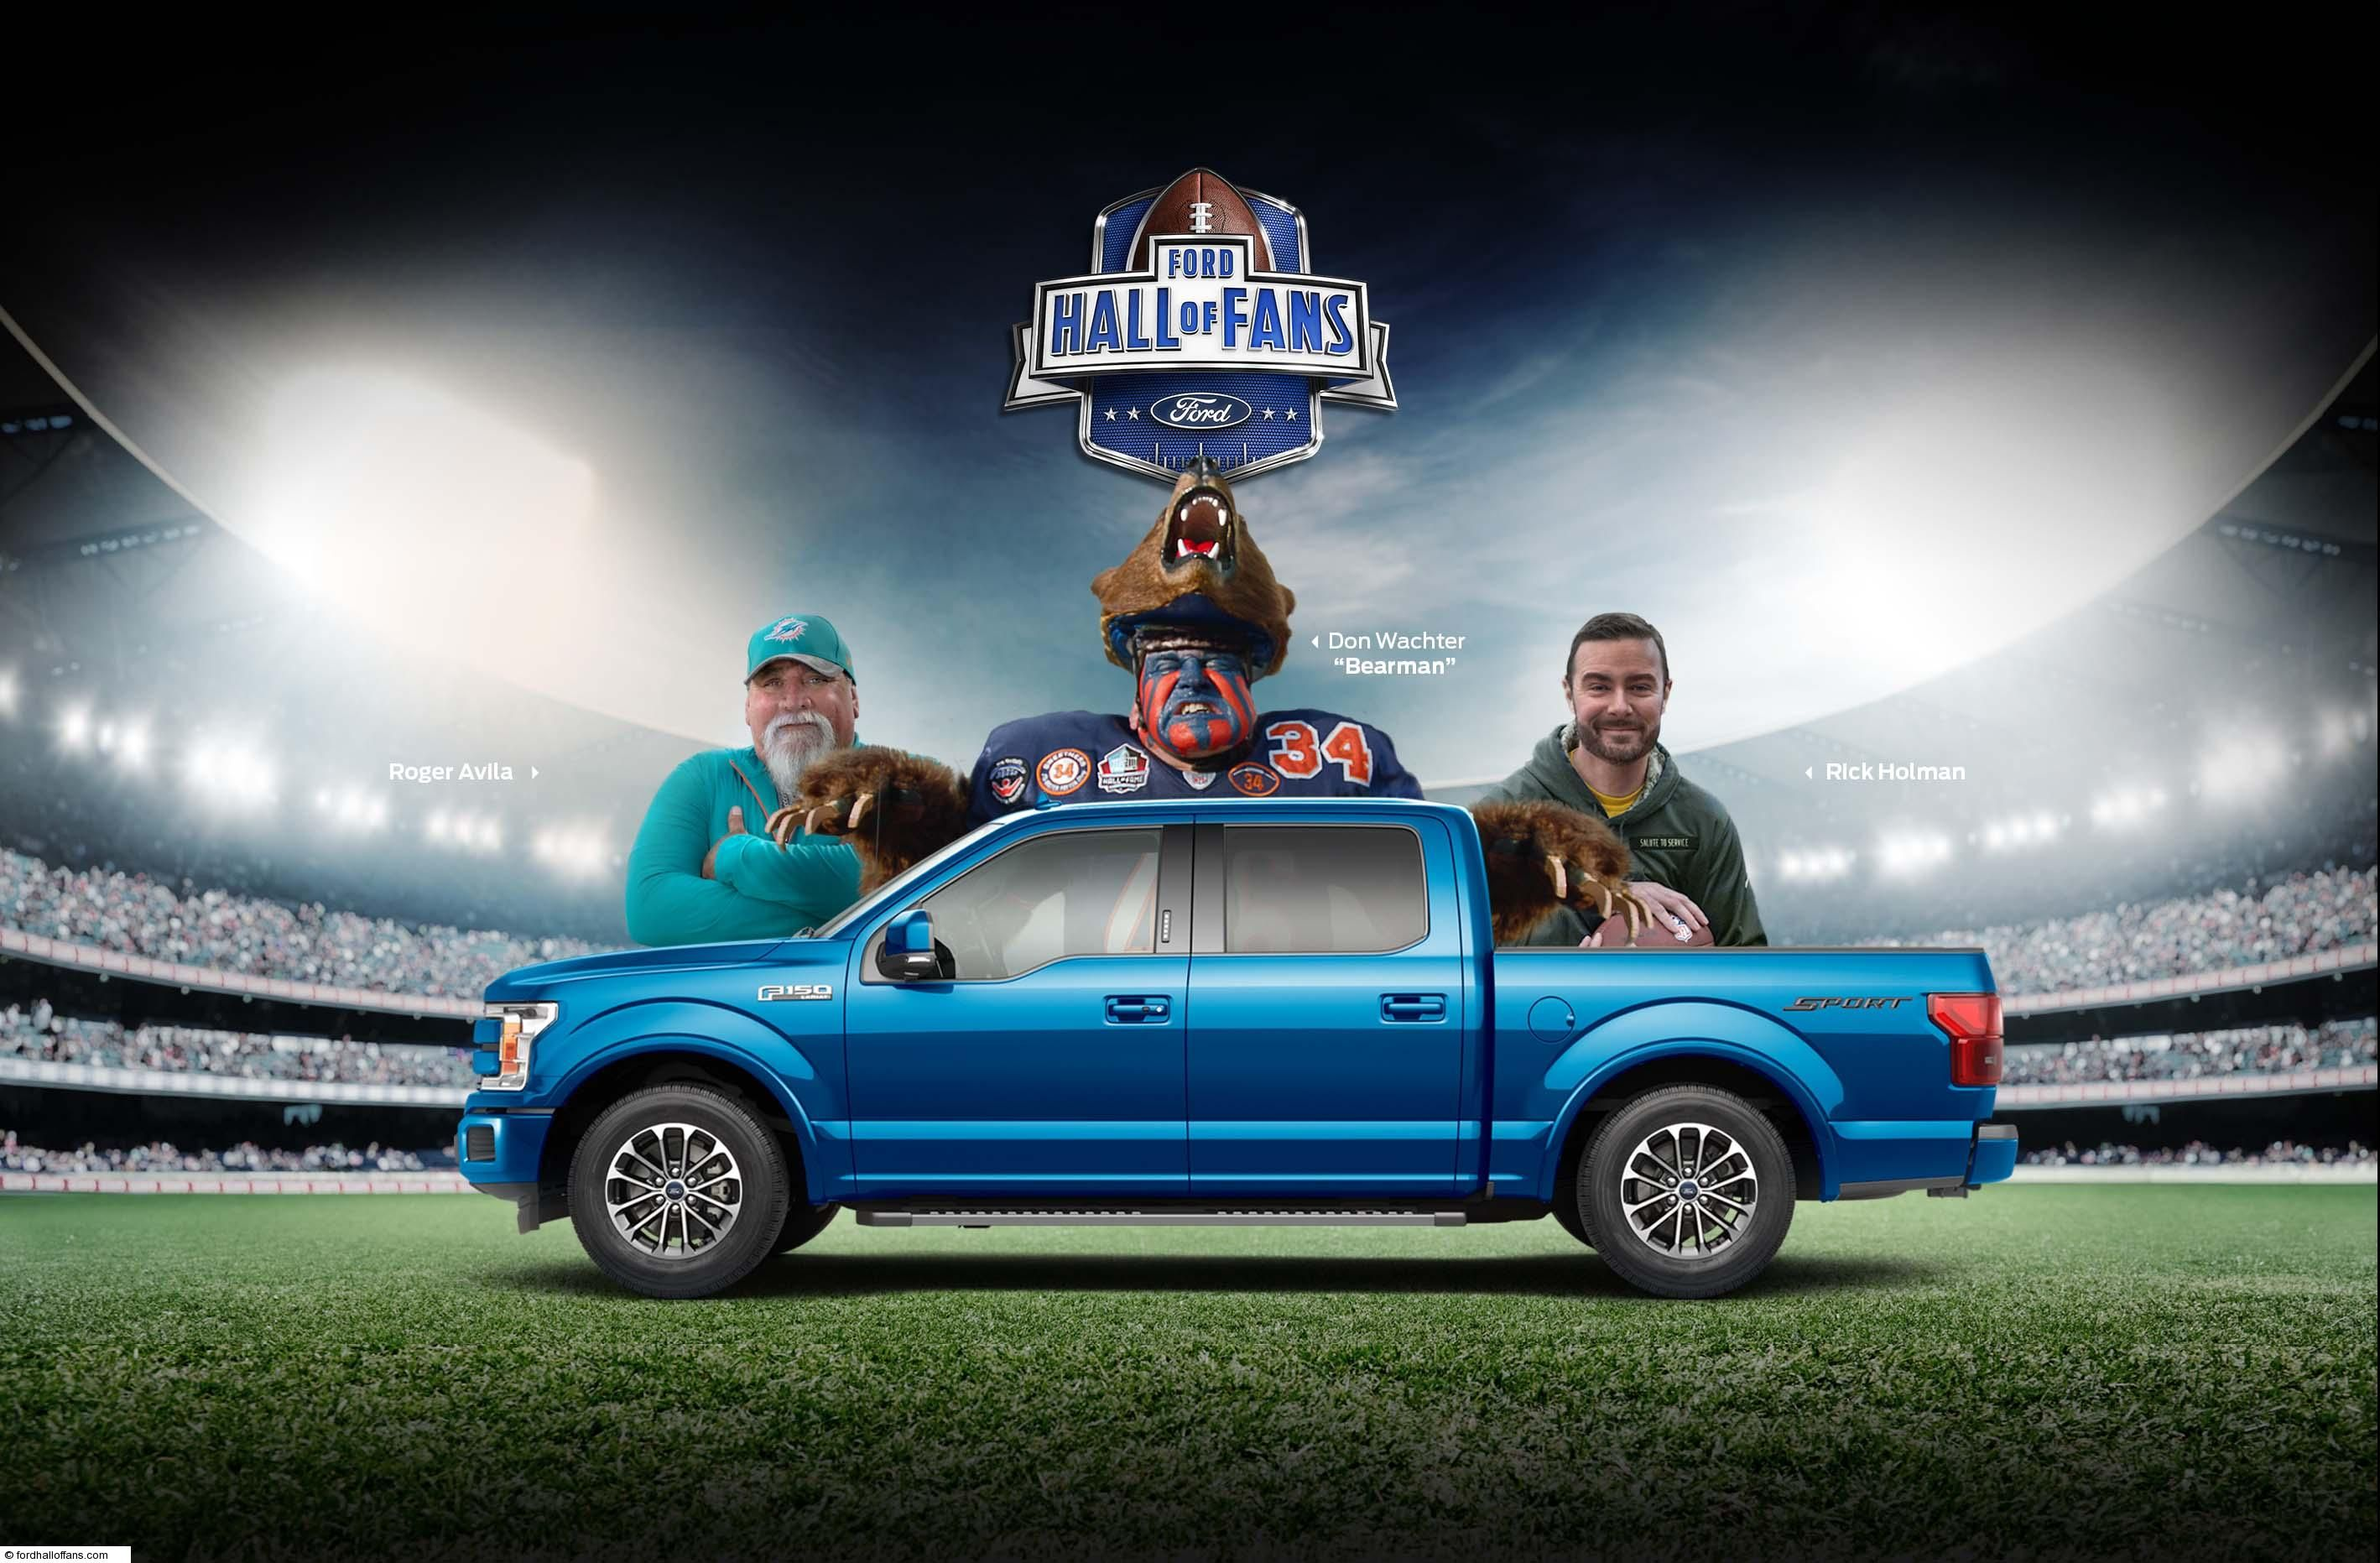 FORD FOOTBALL HALL OF FANS CONTEST in 2020 Win a trip